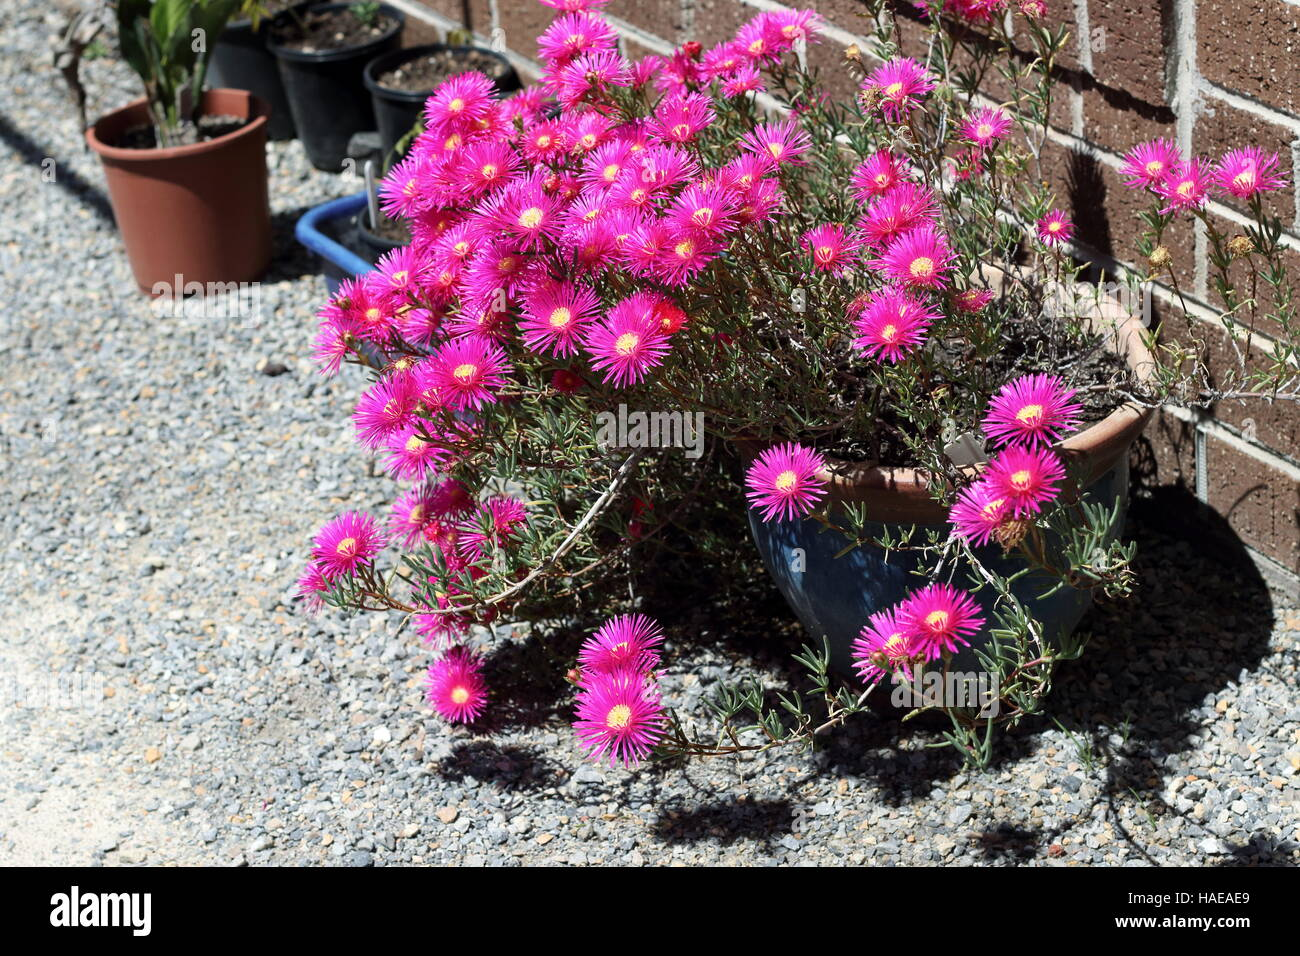 Pink Pig face flowers or Mesembryanthemum , ice plant flowers, Livingstone Daisies in full bloom - Stock Image